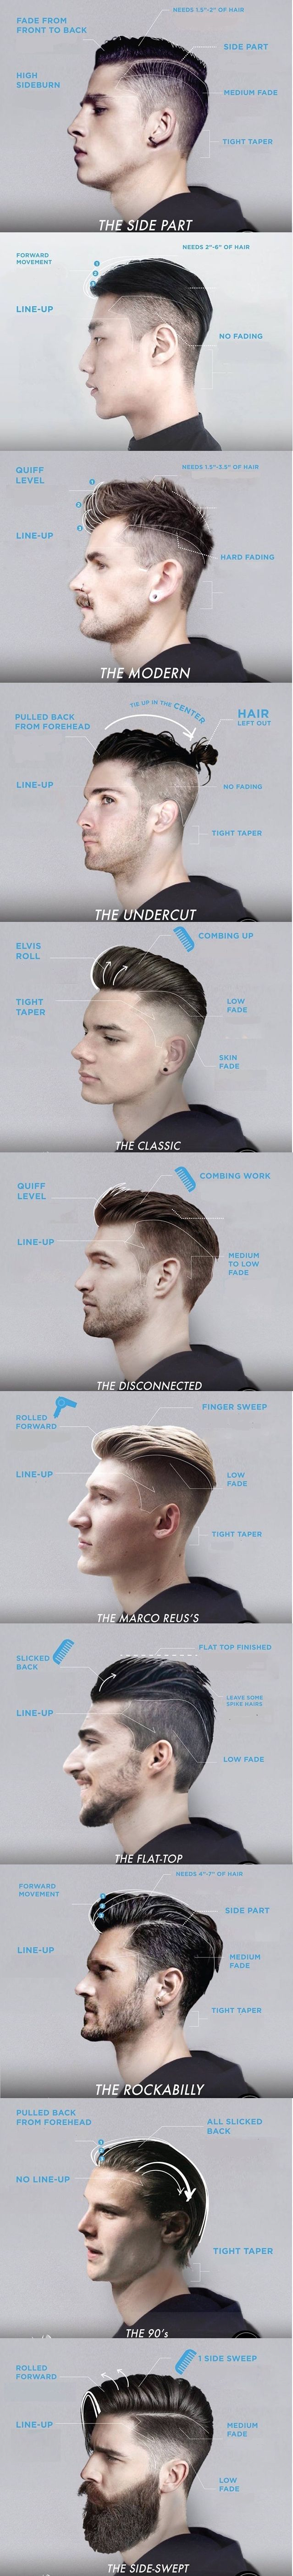 Simple and detailed undercut styling tutorial!: